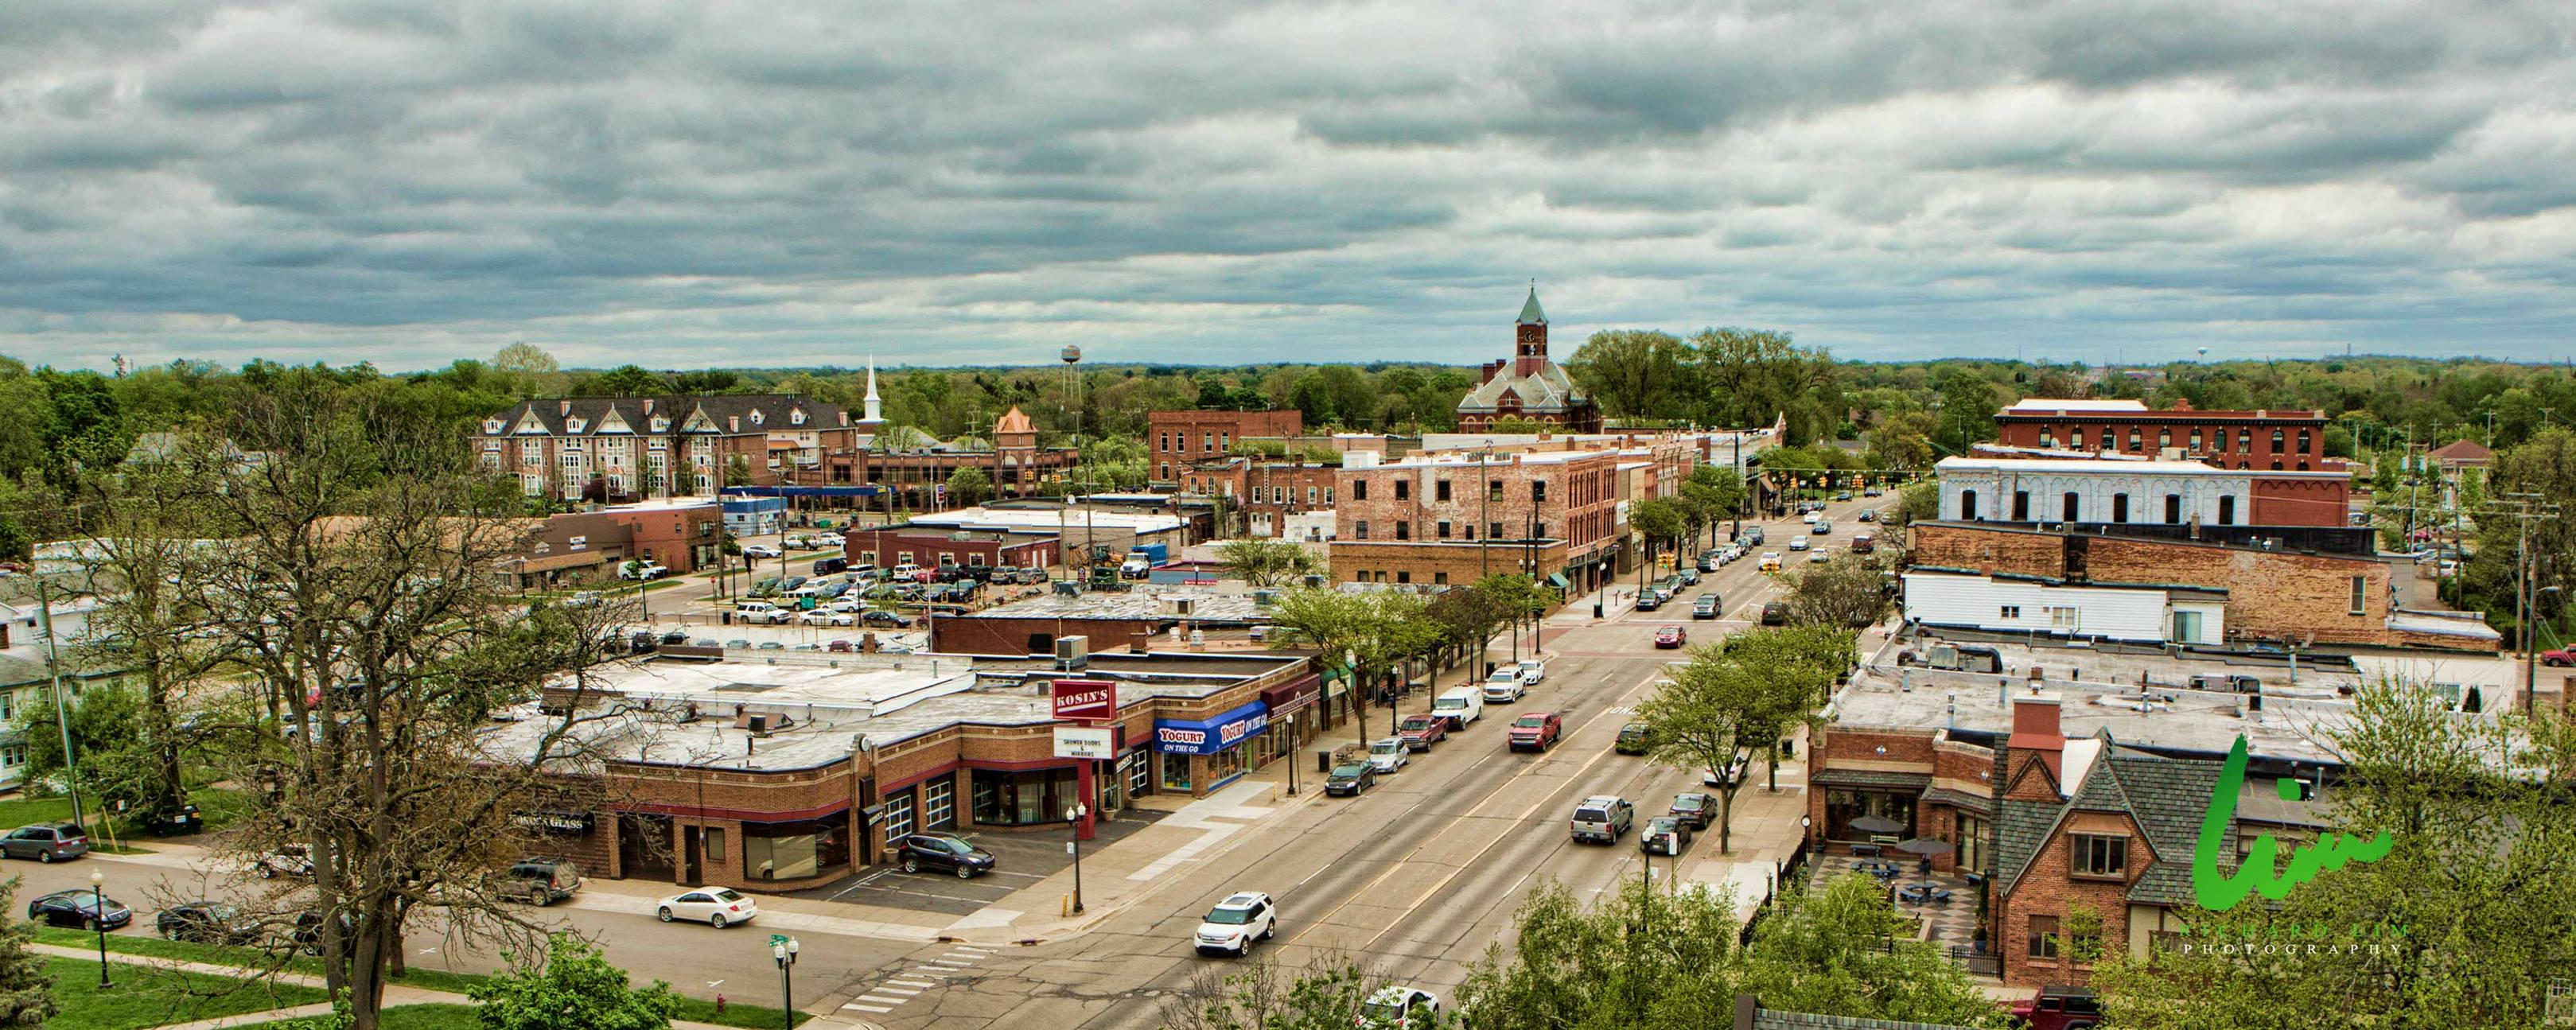 Richard Lim Photography - Downtown Howell Aerial Photo